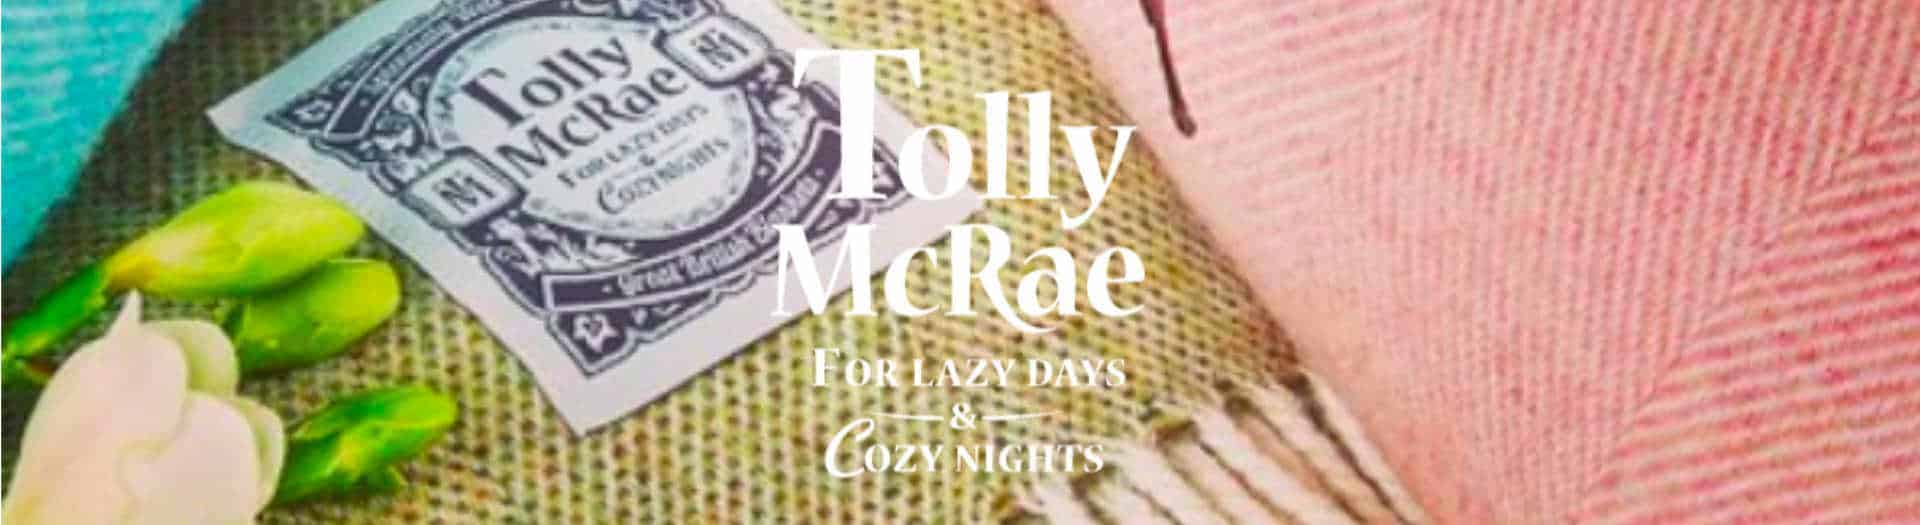 Handcrafted Tolly McRae Wool Picnic Blanket Logo Header